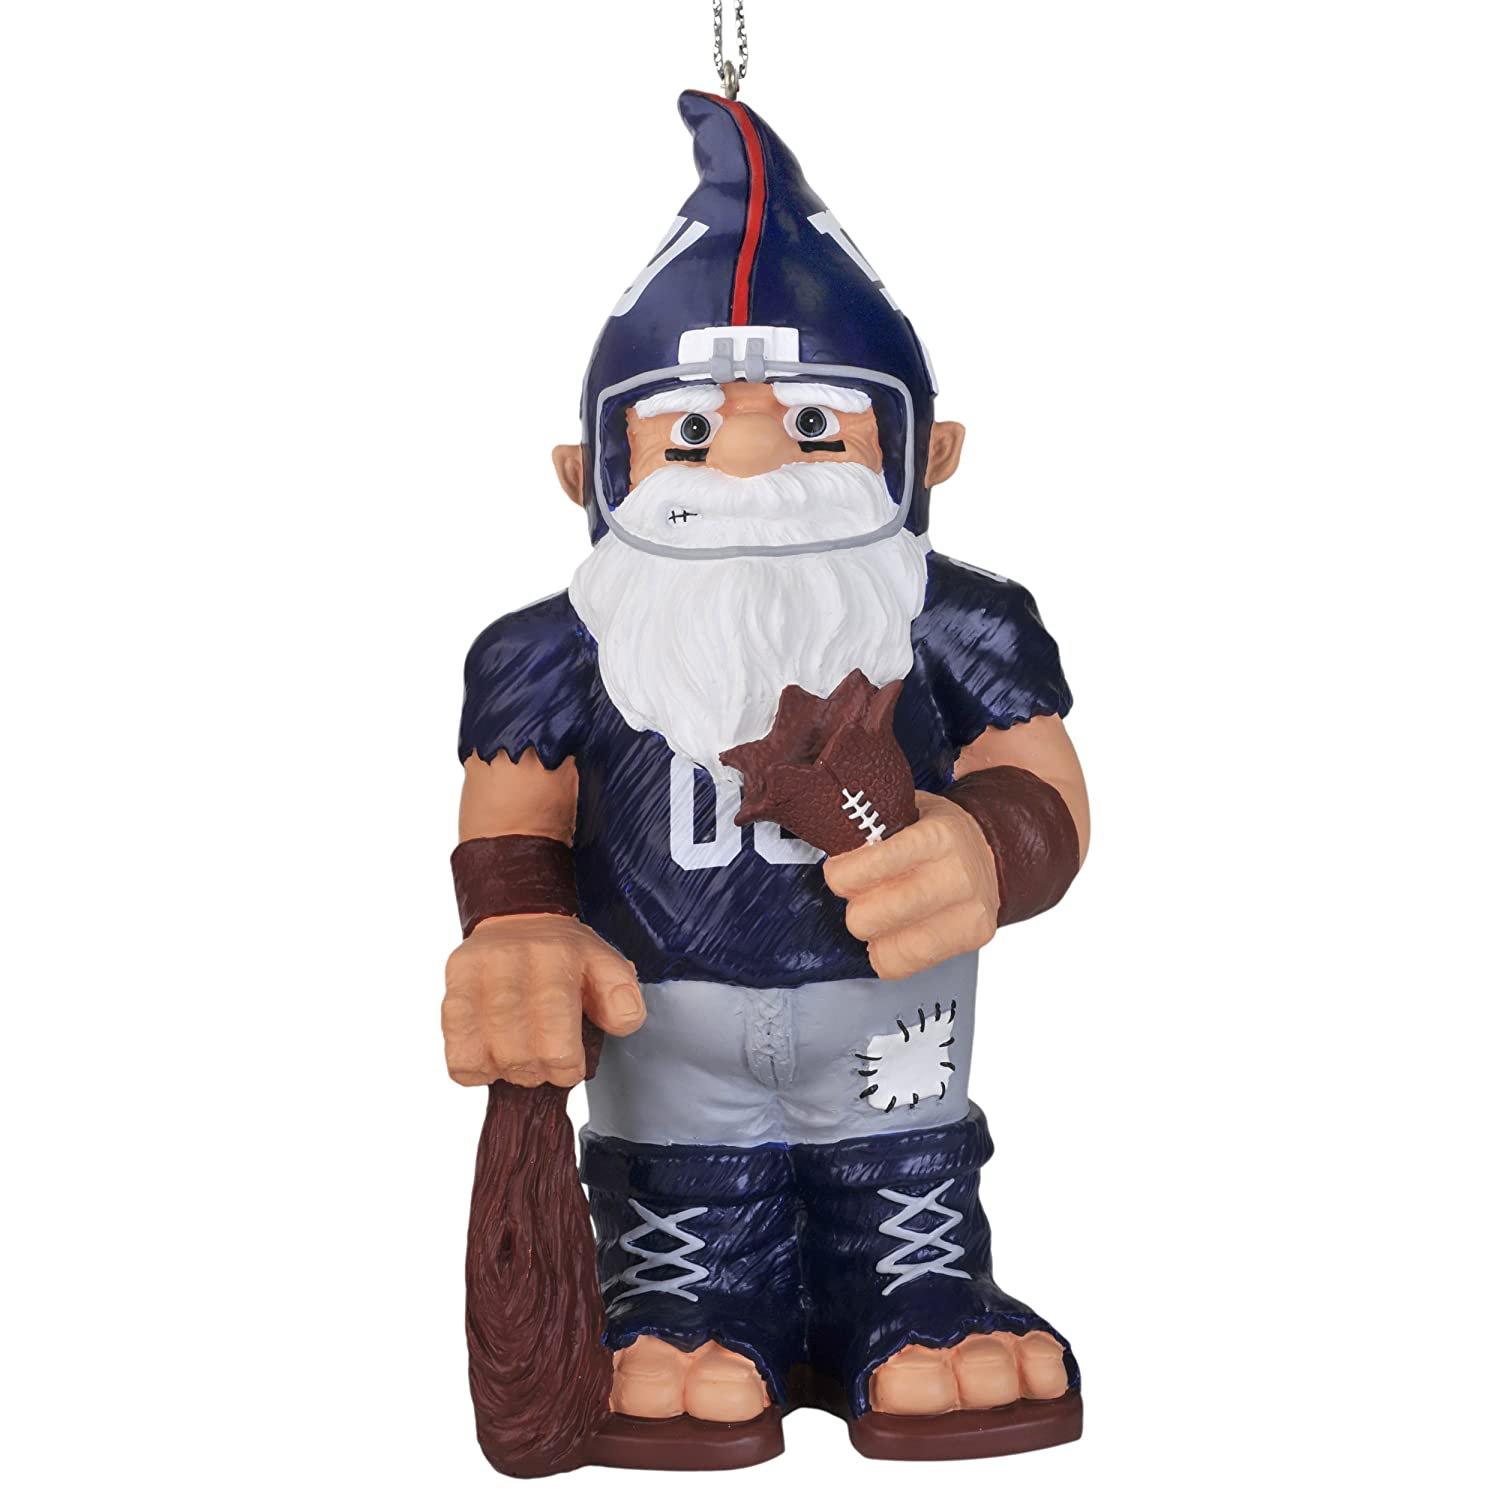 Amazon.com : NFL New York Giants Thematic Gnome Ornament : Sports ...